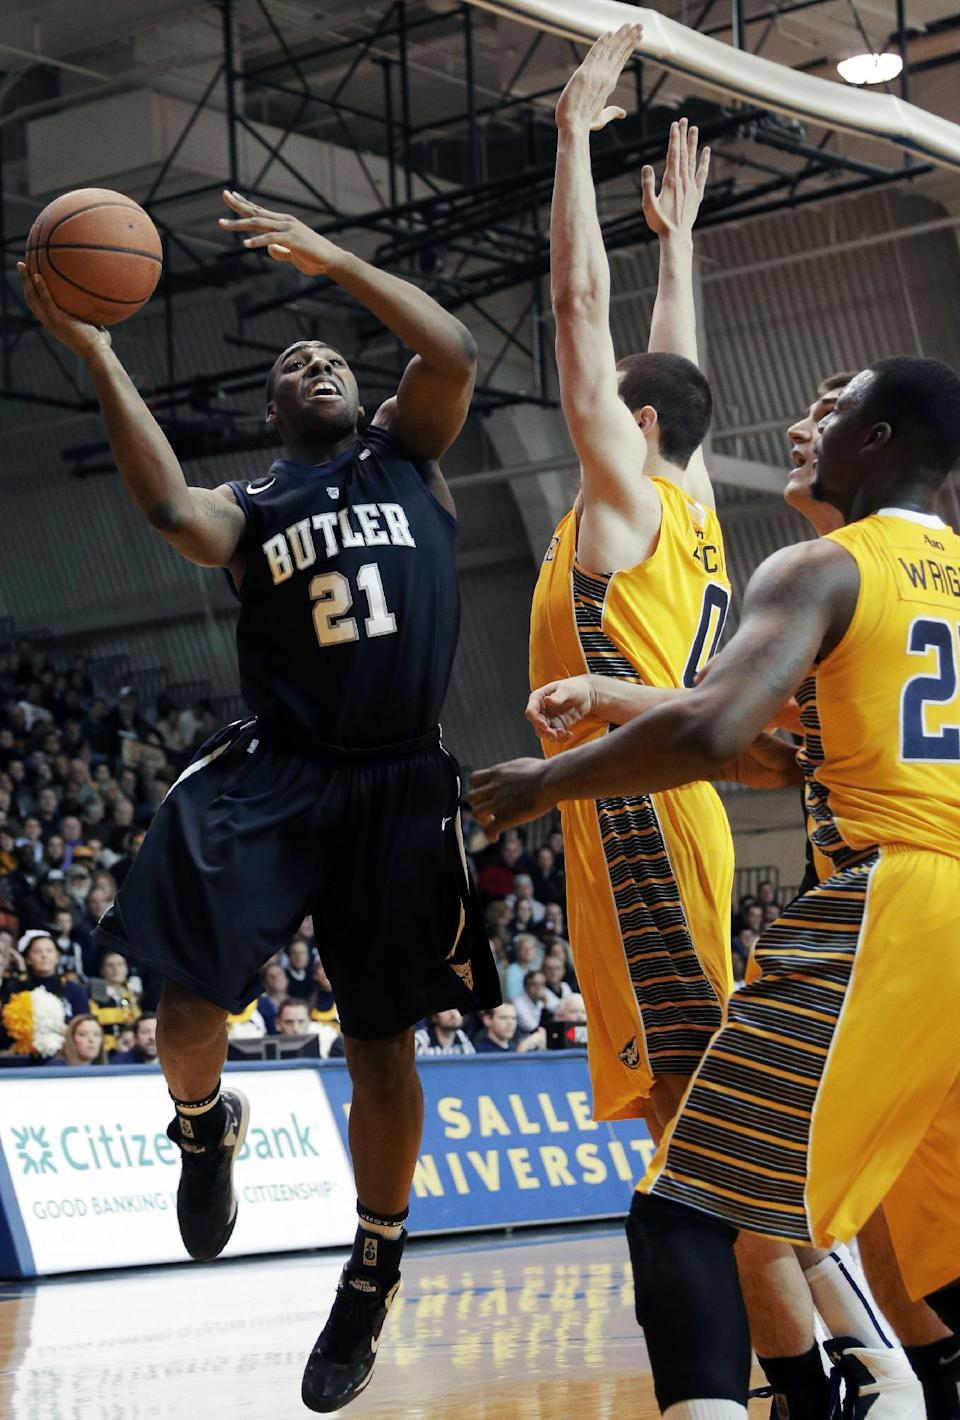 Butler's Roosevelt Jones, left, goes up for a shot against La Salle's Steve Zack, center, and Jerrell Wright during the first half of an NCAA college basketball game, Wednesday, Jan. 23, 2013, in Philadelphia. (AP Photo/Matt Slocum)